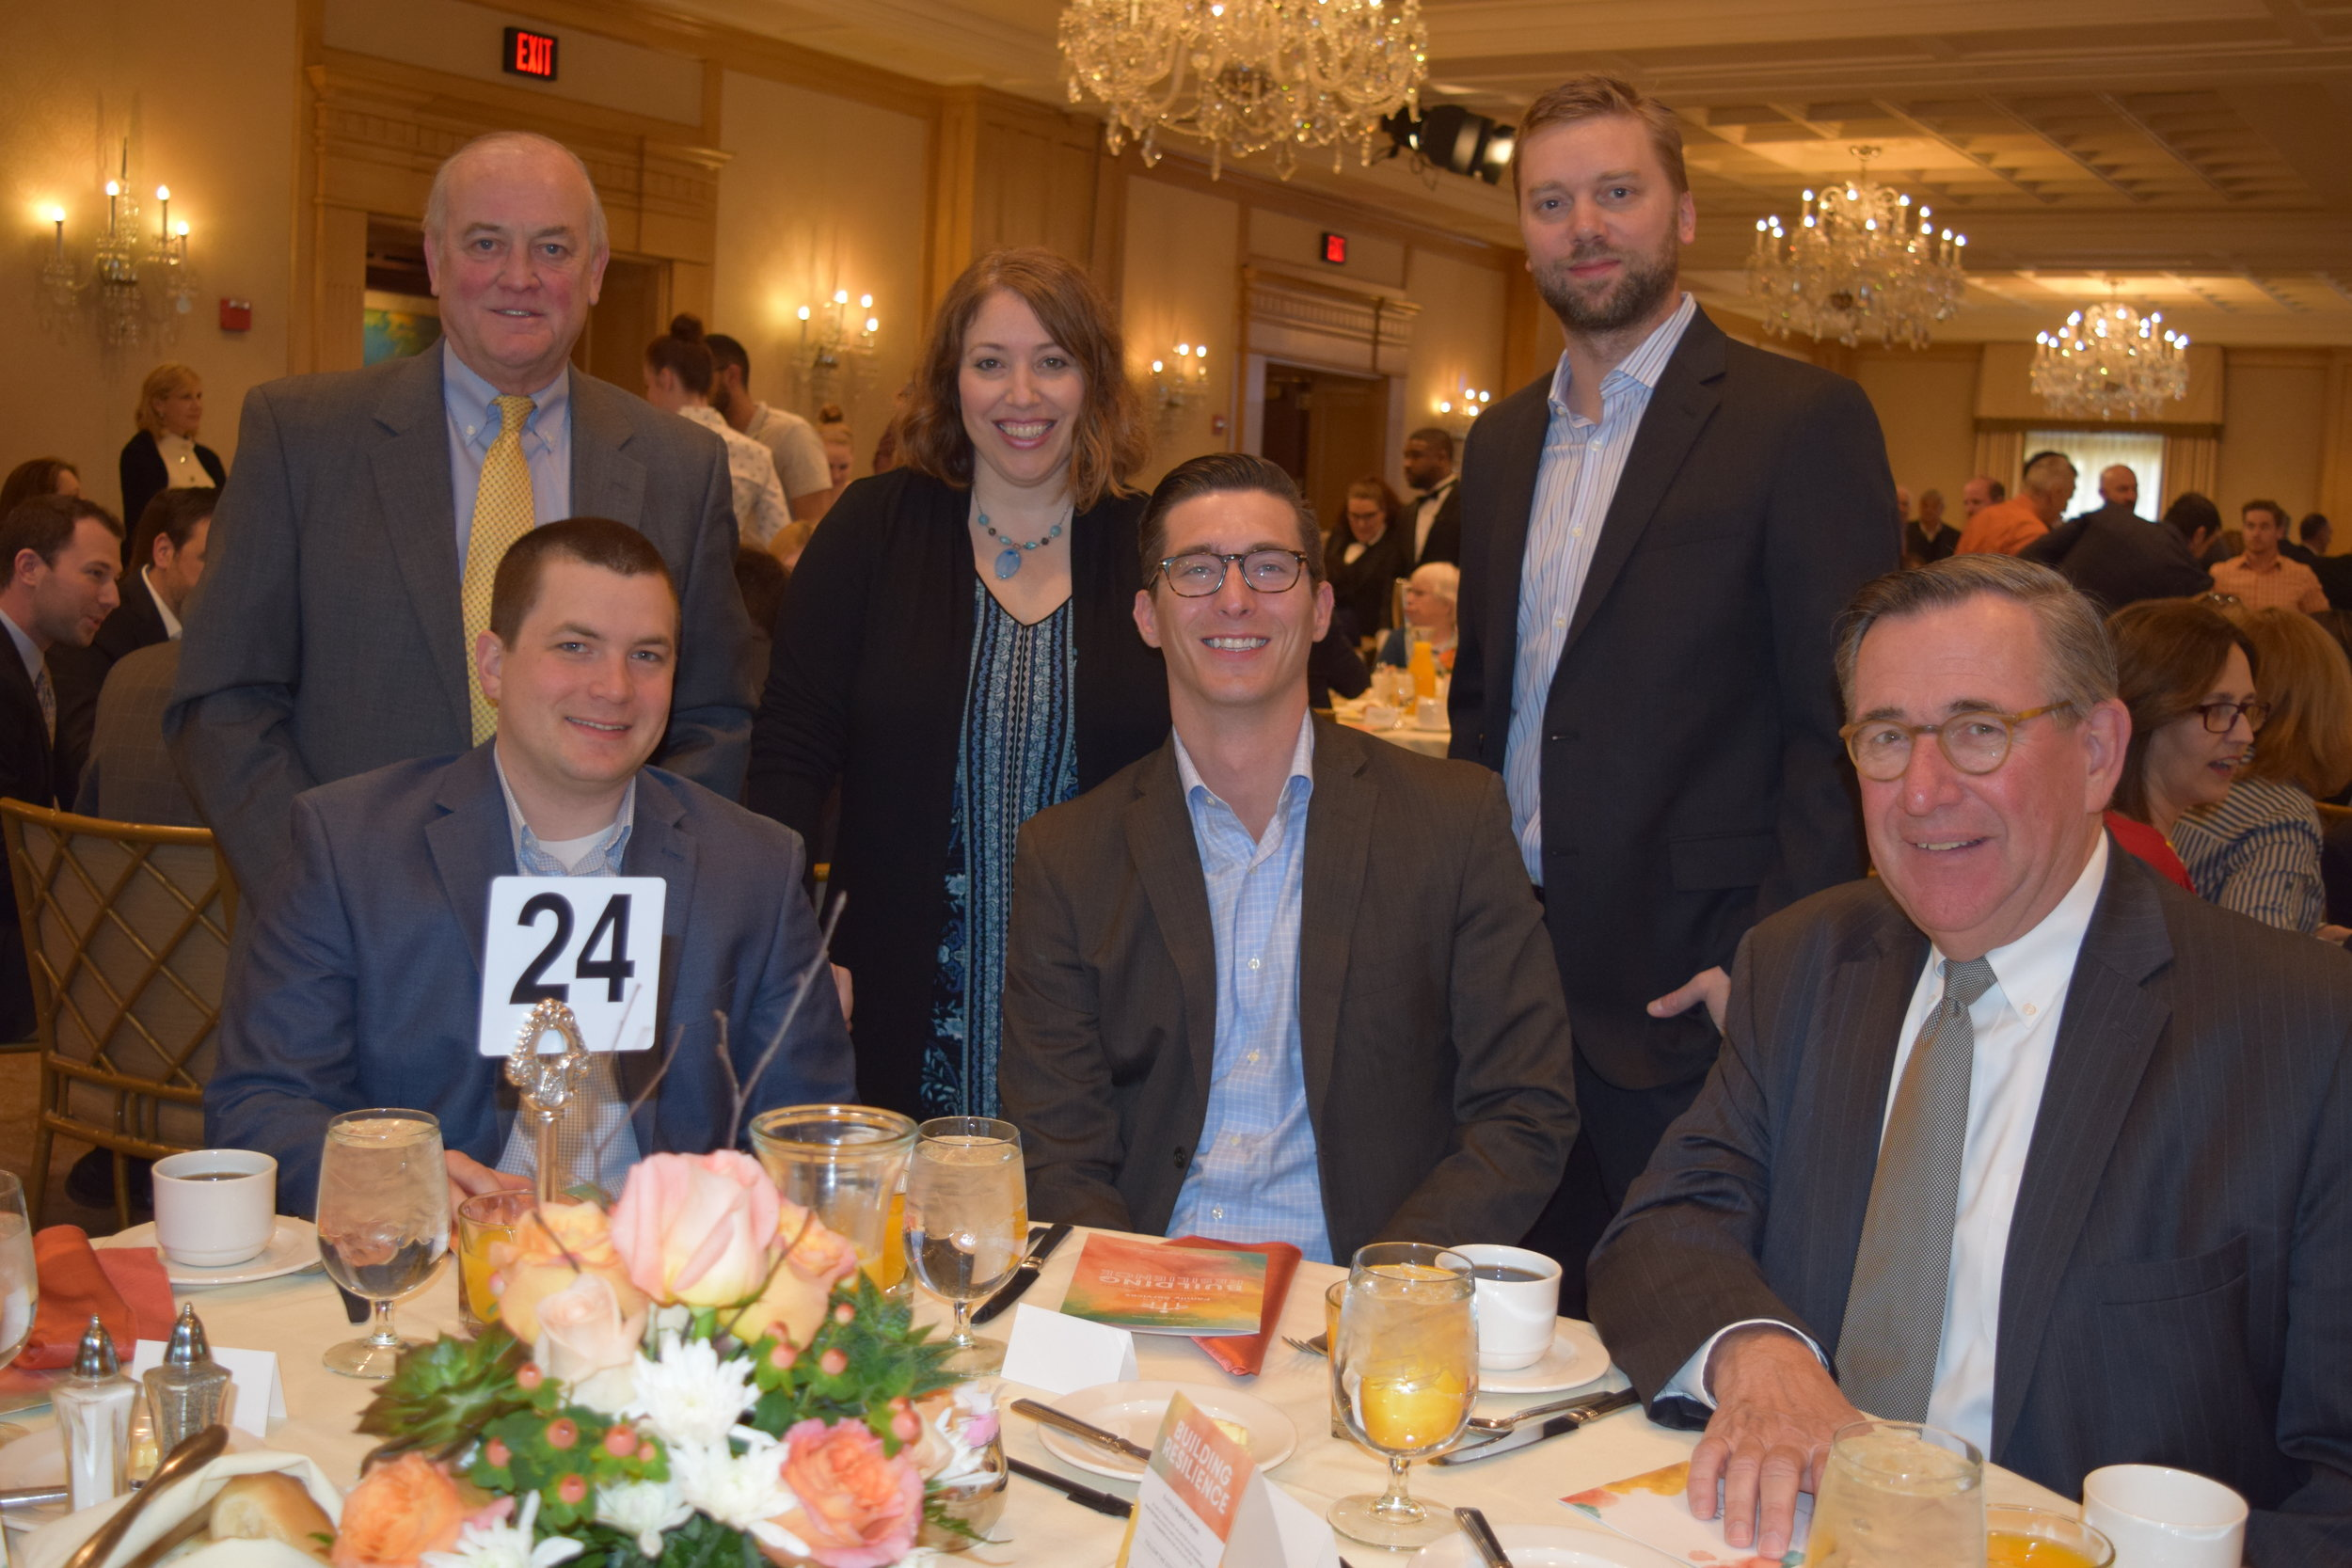 Board member Dan Pienta and guests of  KPMG Recrutement , a breakfast sponsor, attended the event.